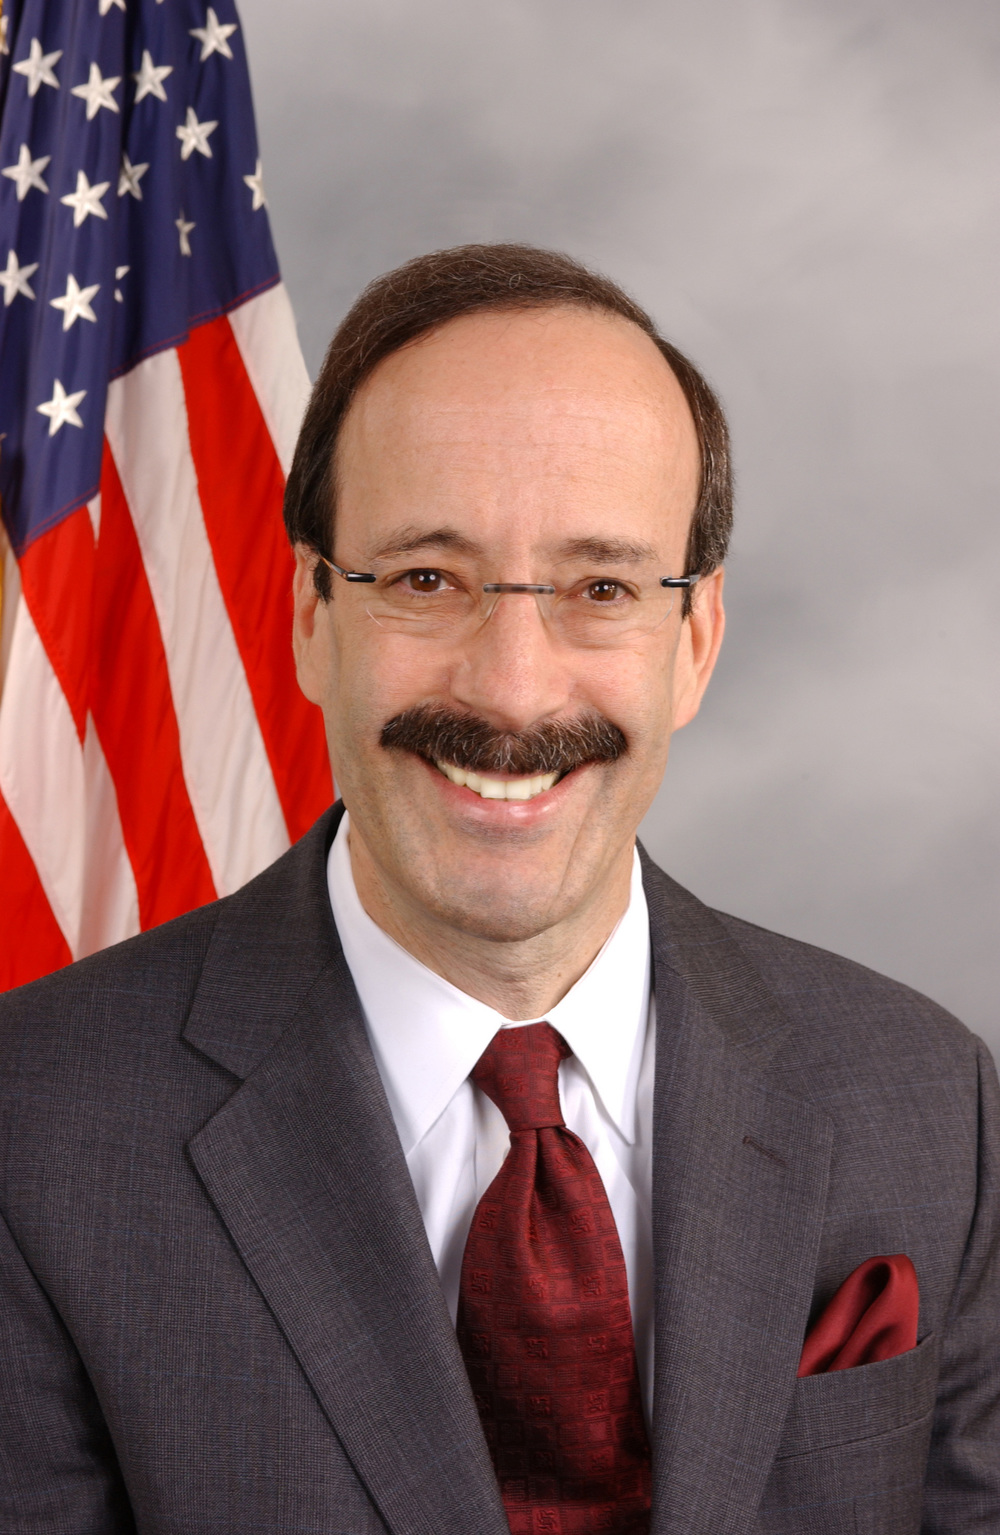 U.S. Rep. Eliot Engel (D-NY). Credit: United States Congress.